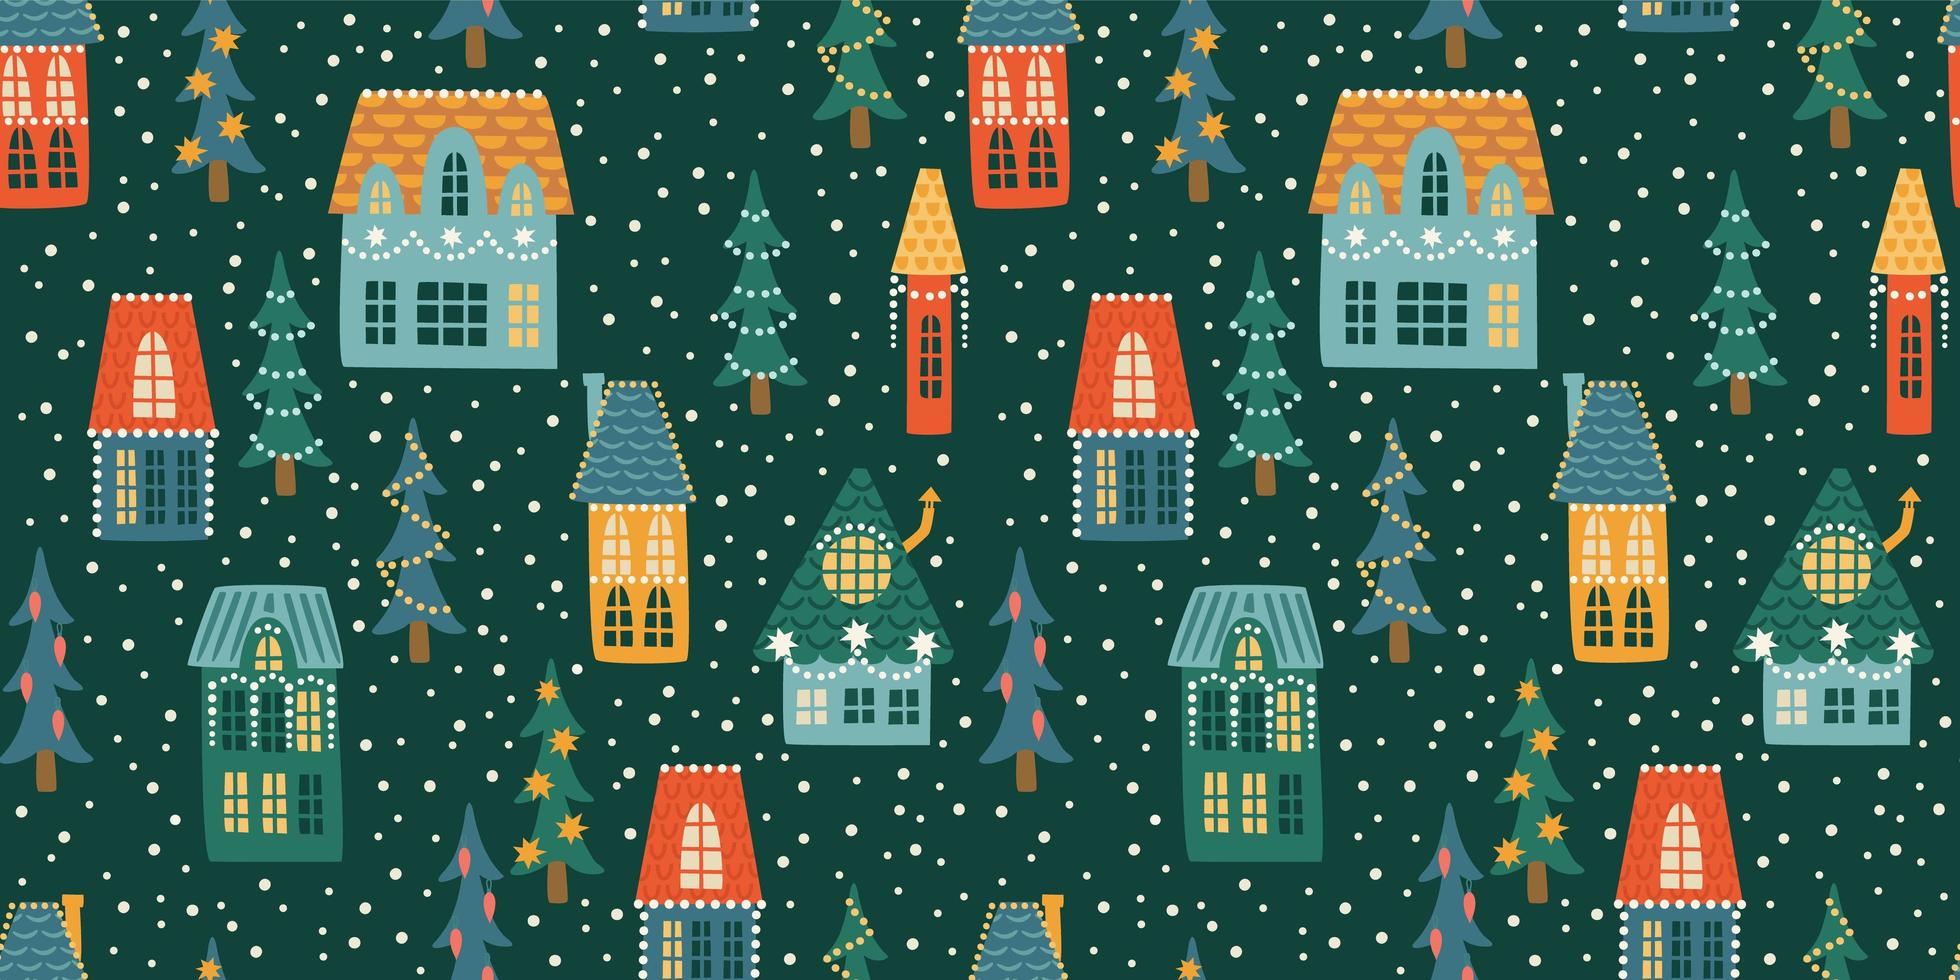 Christmas and Happy New Year seamless pattern. City, houses, Christmas trees, snow. New Year symbols. vector